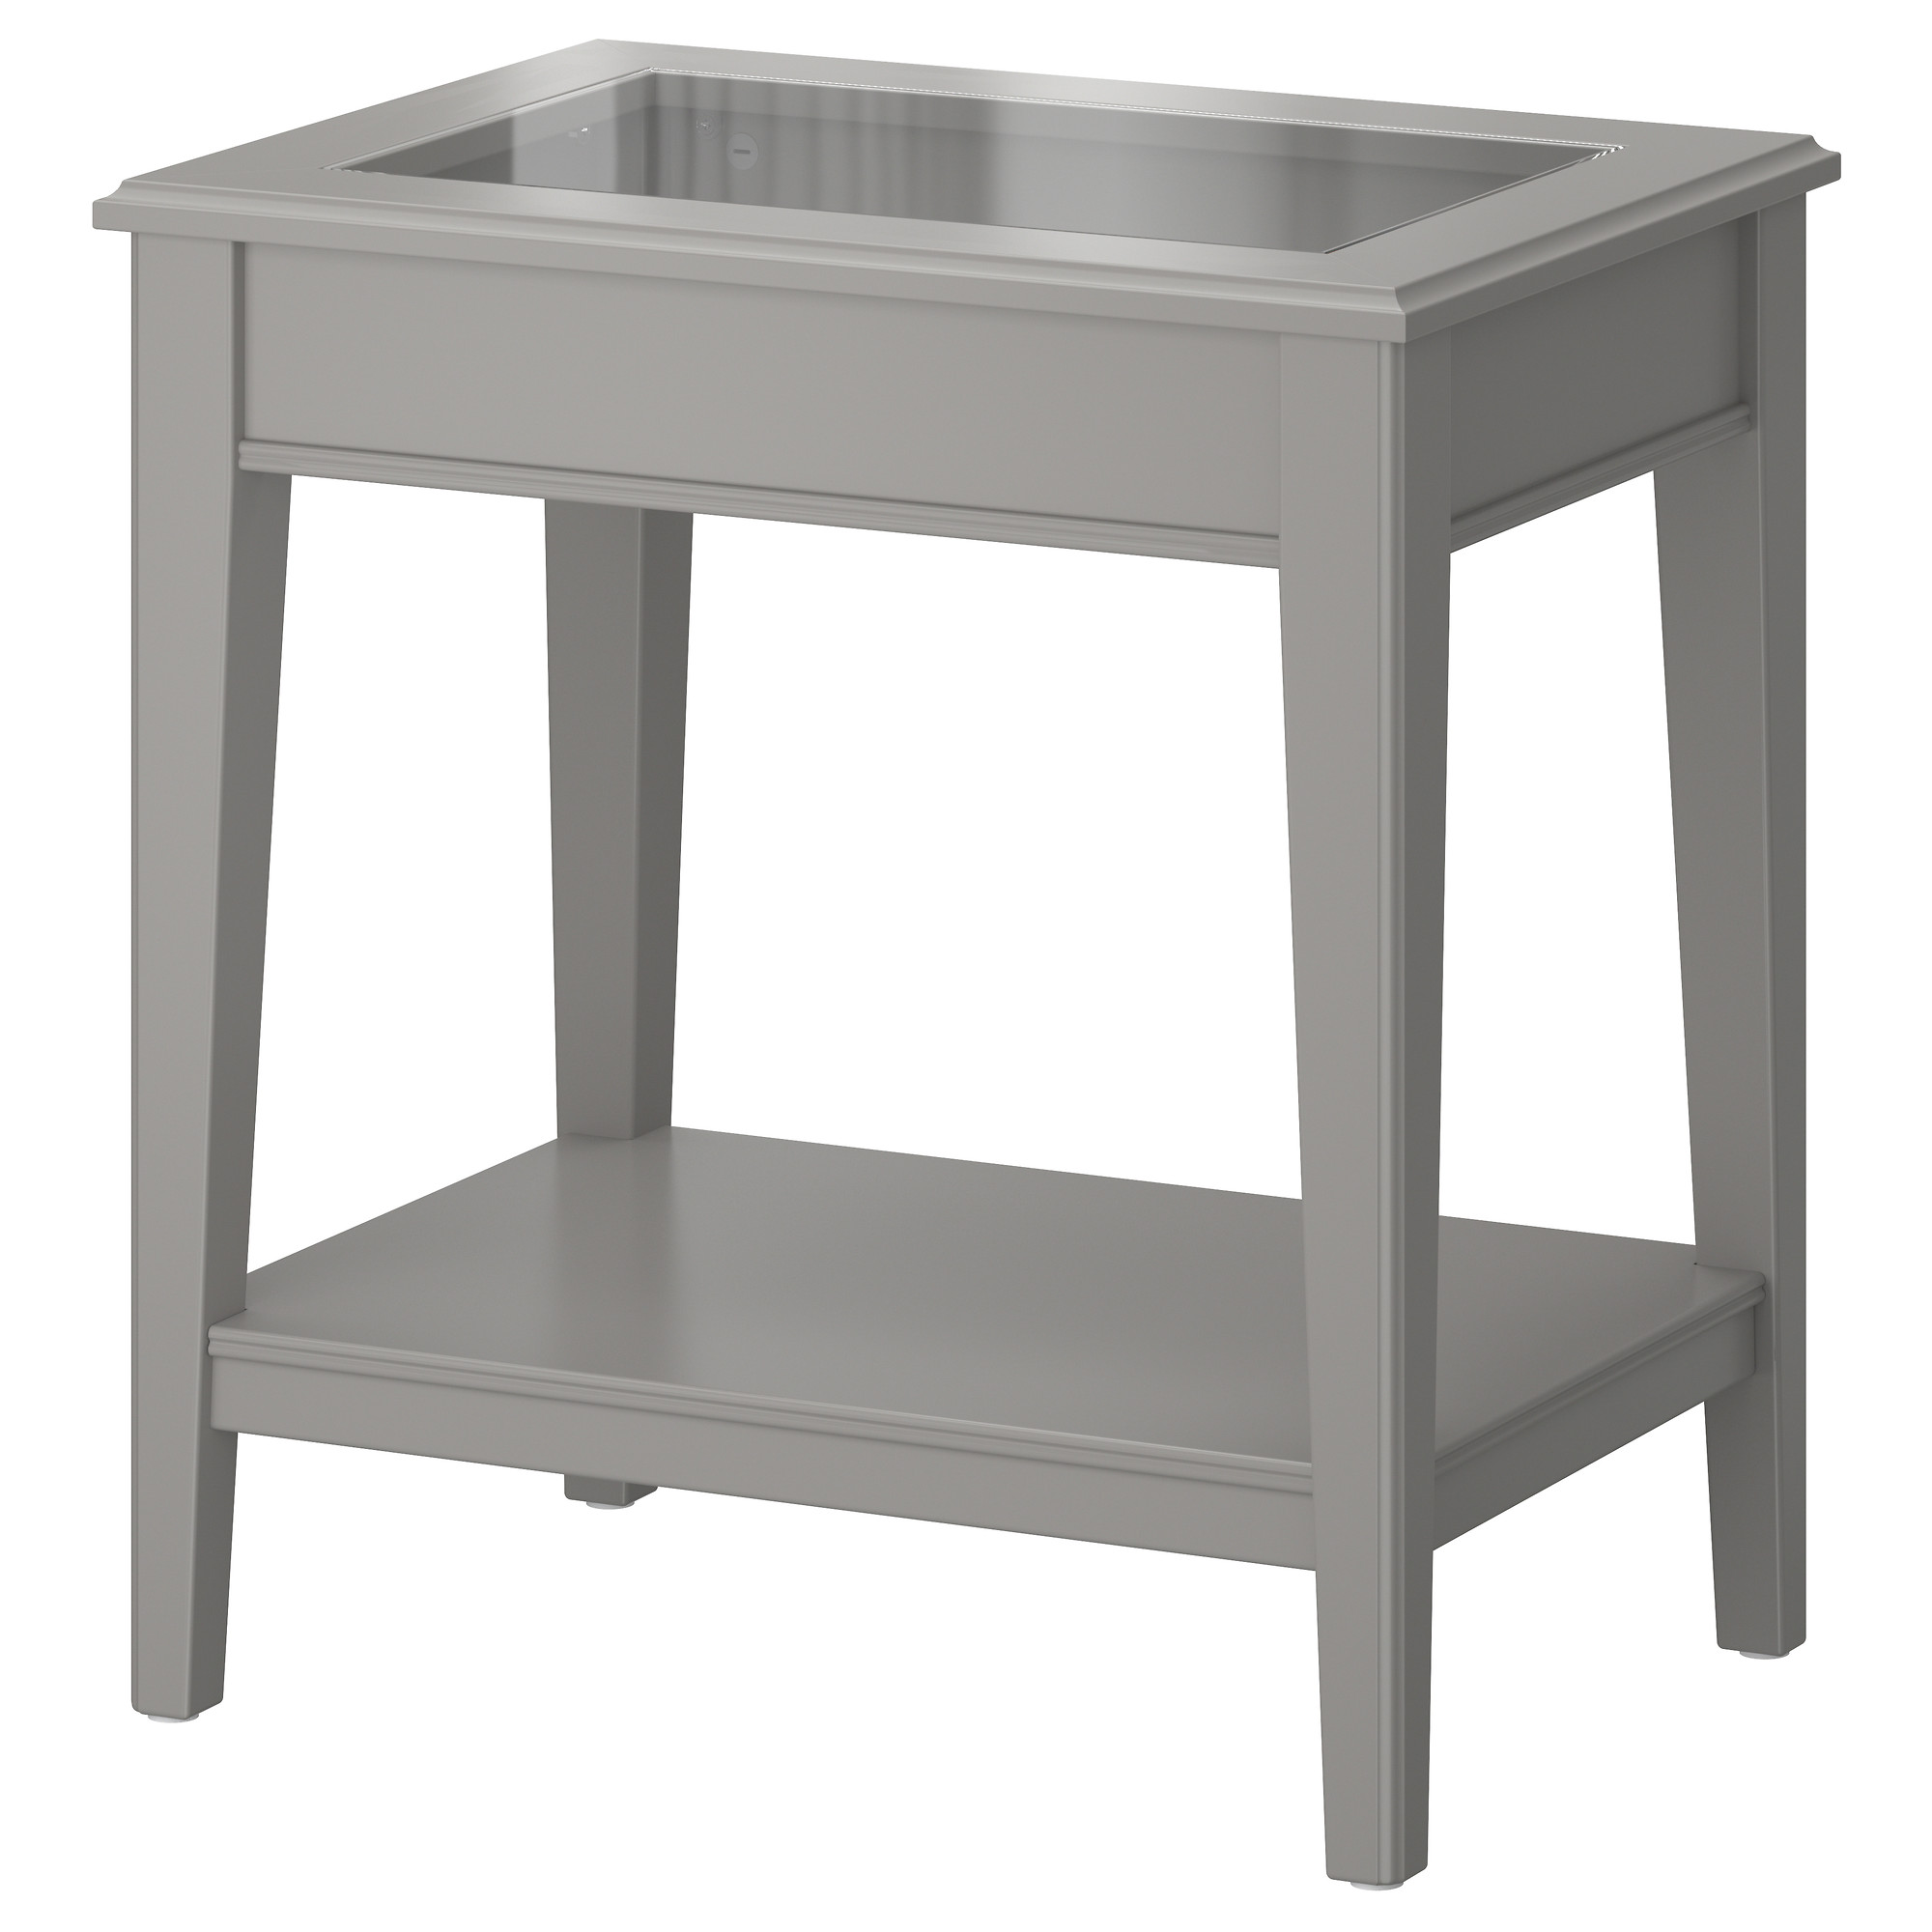 New side tables liatorp side table - gray/glass - ikea pqnetak